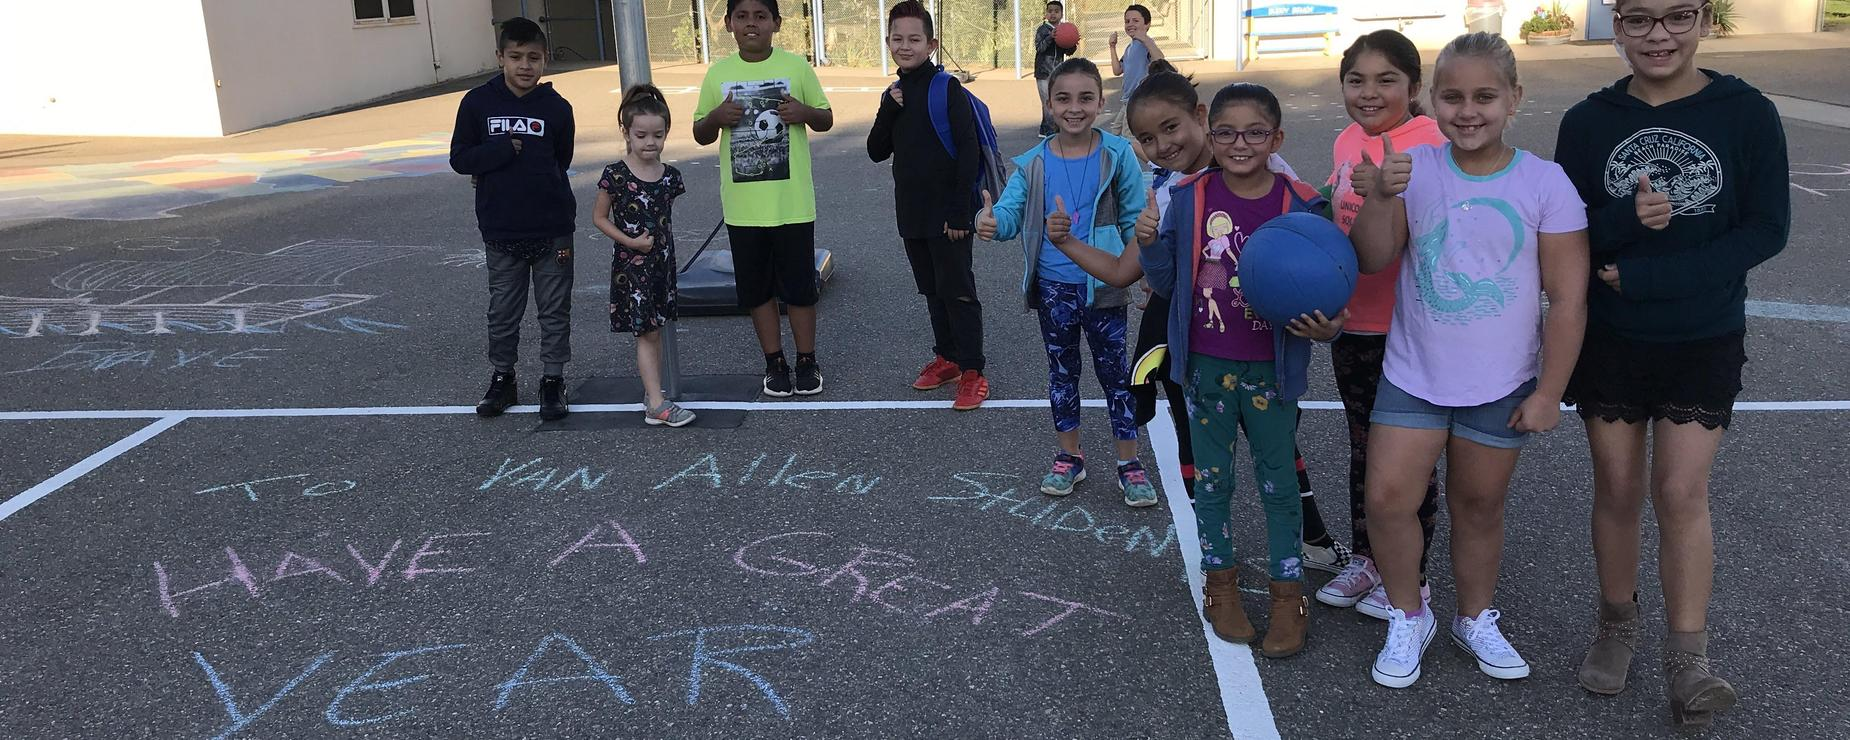 Positive messages in sidewalk chalk and kids